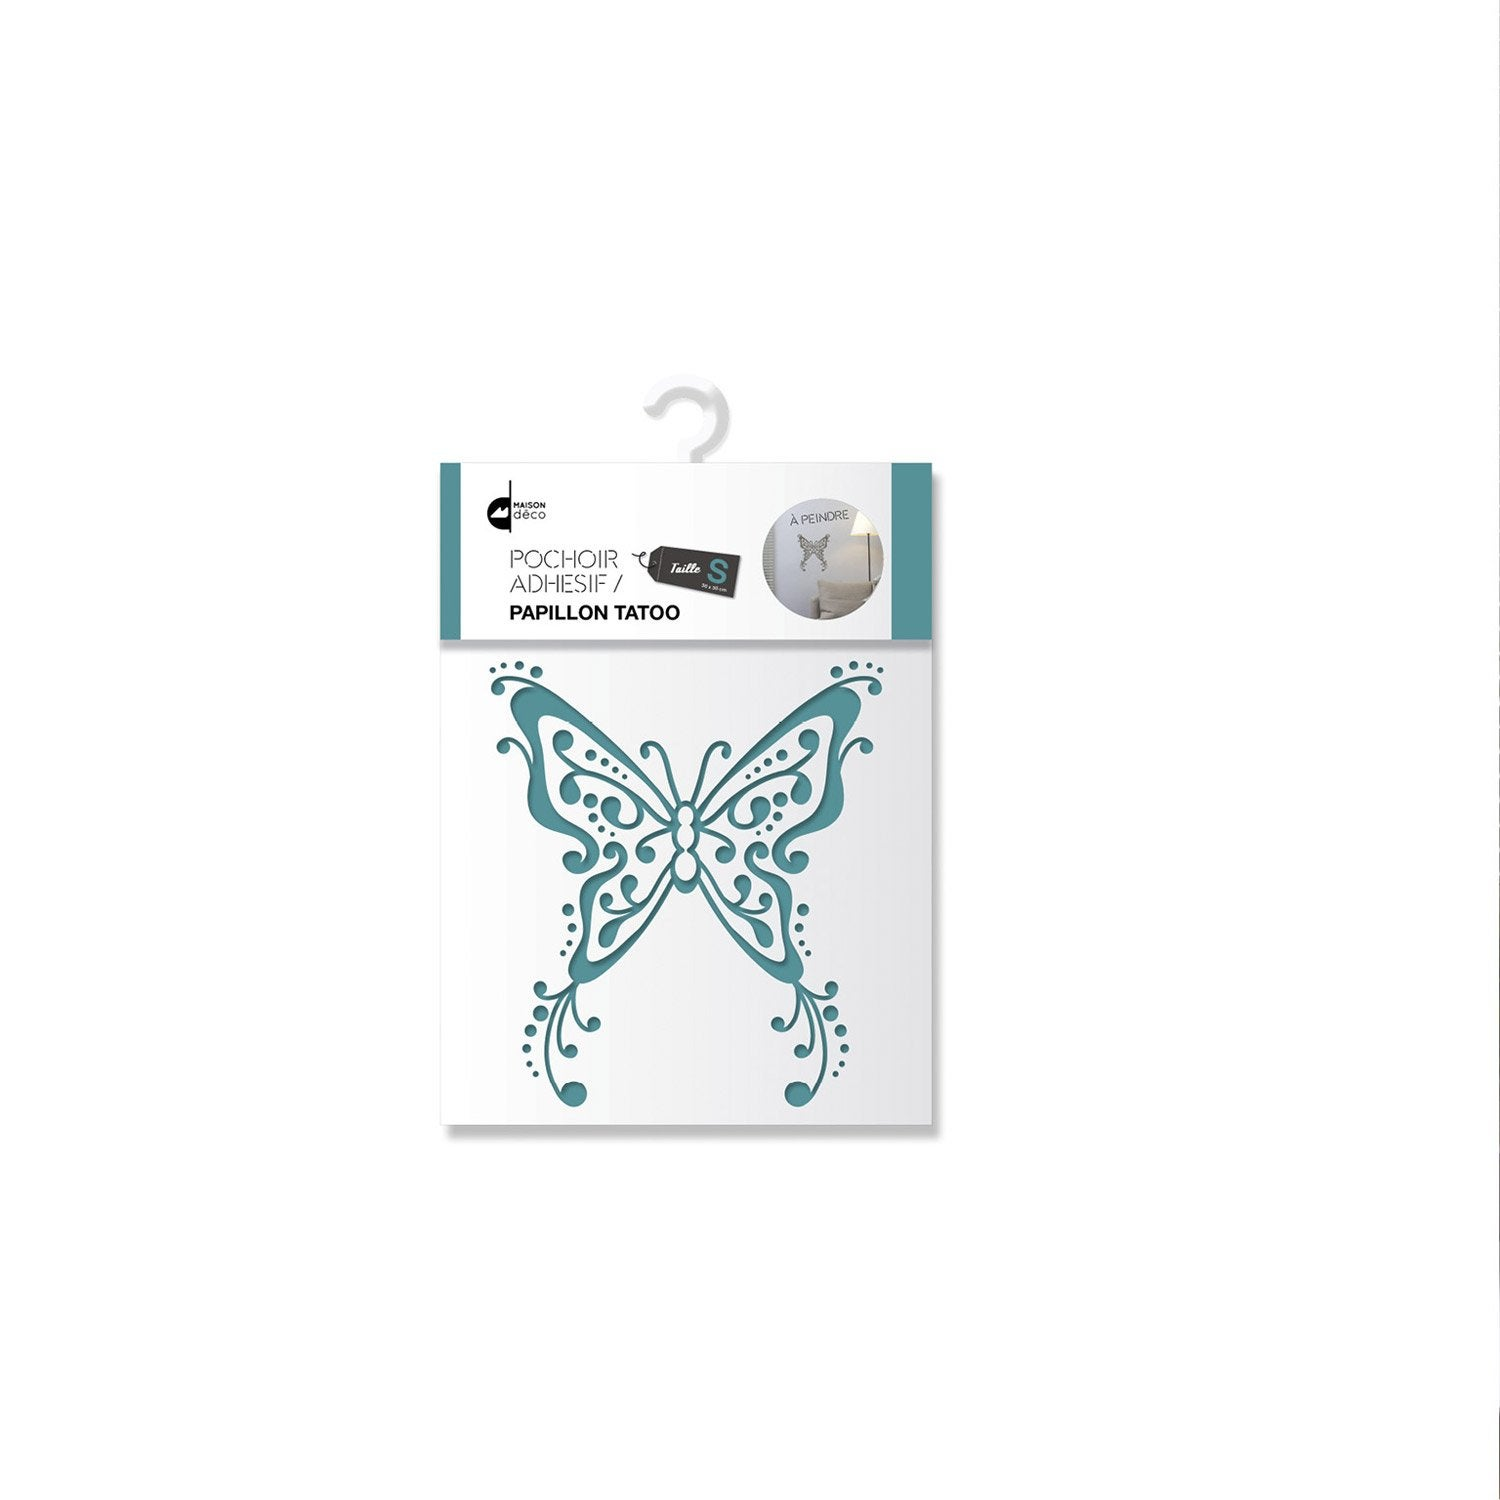 pochoir s papillon tatoo maison deco leroy merlin